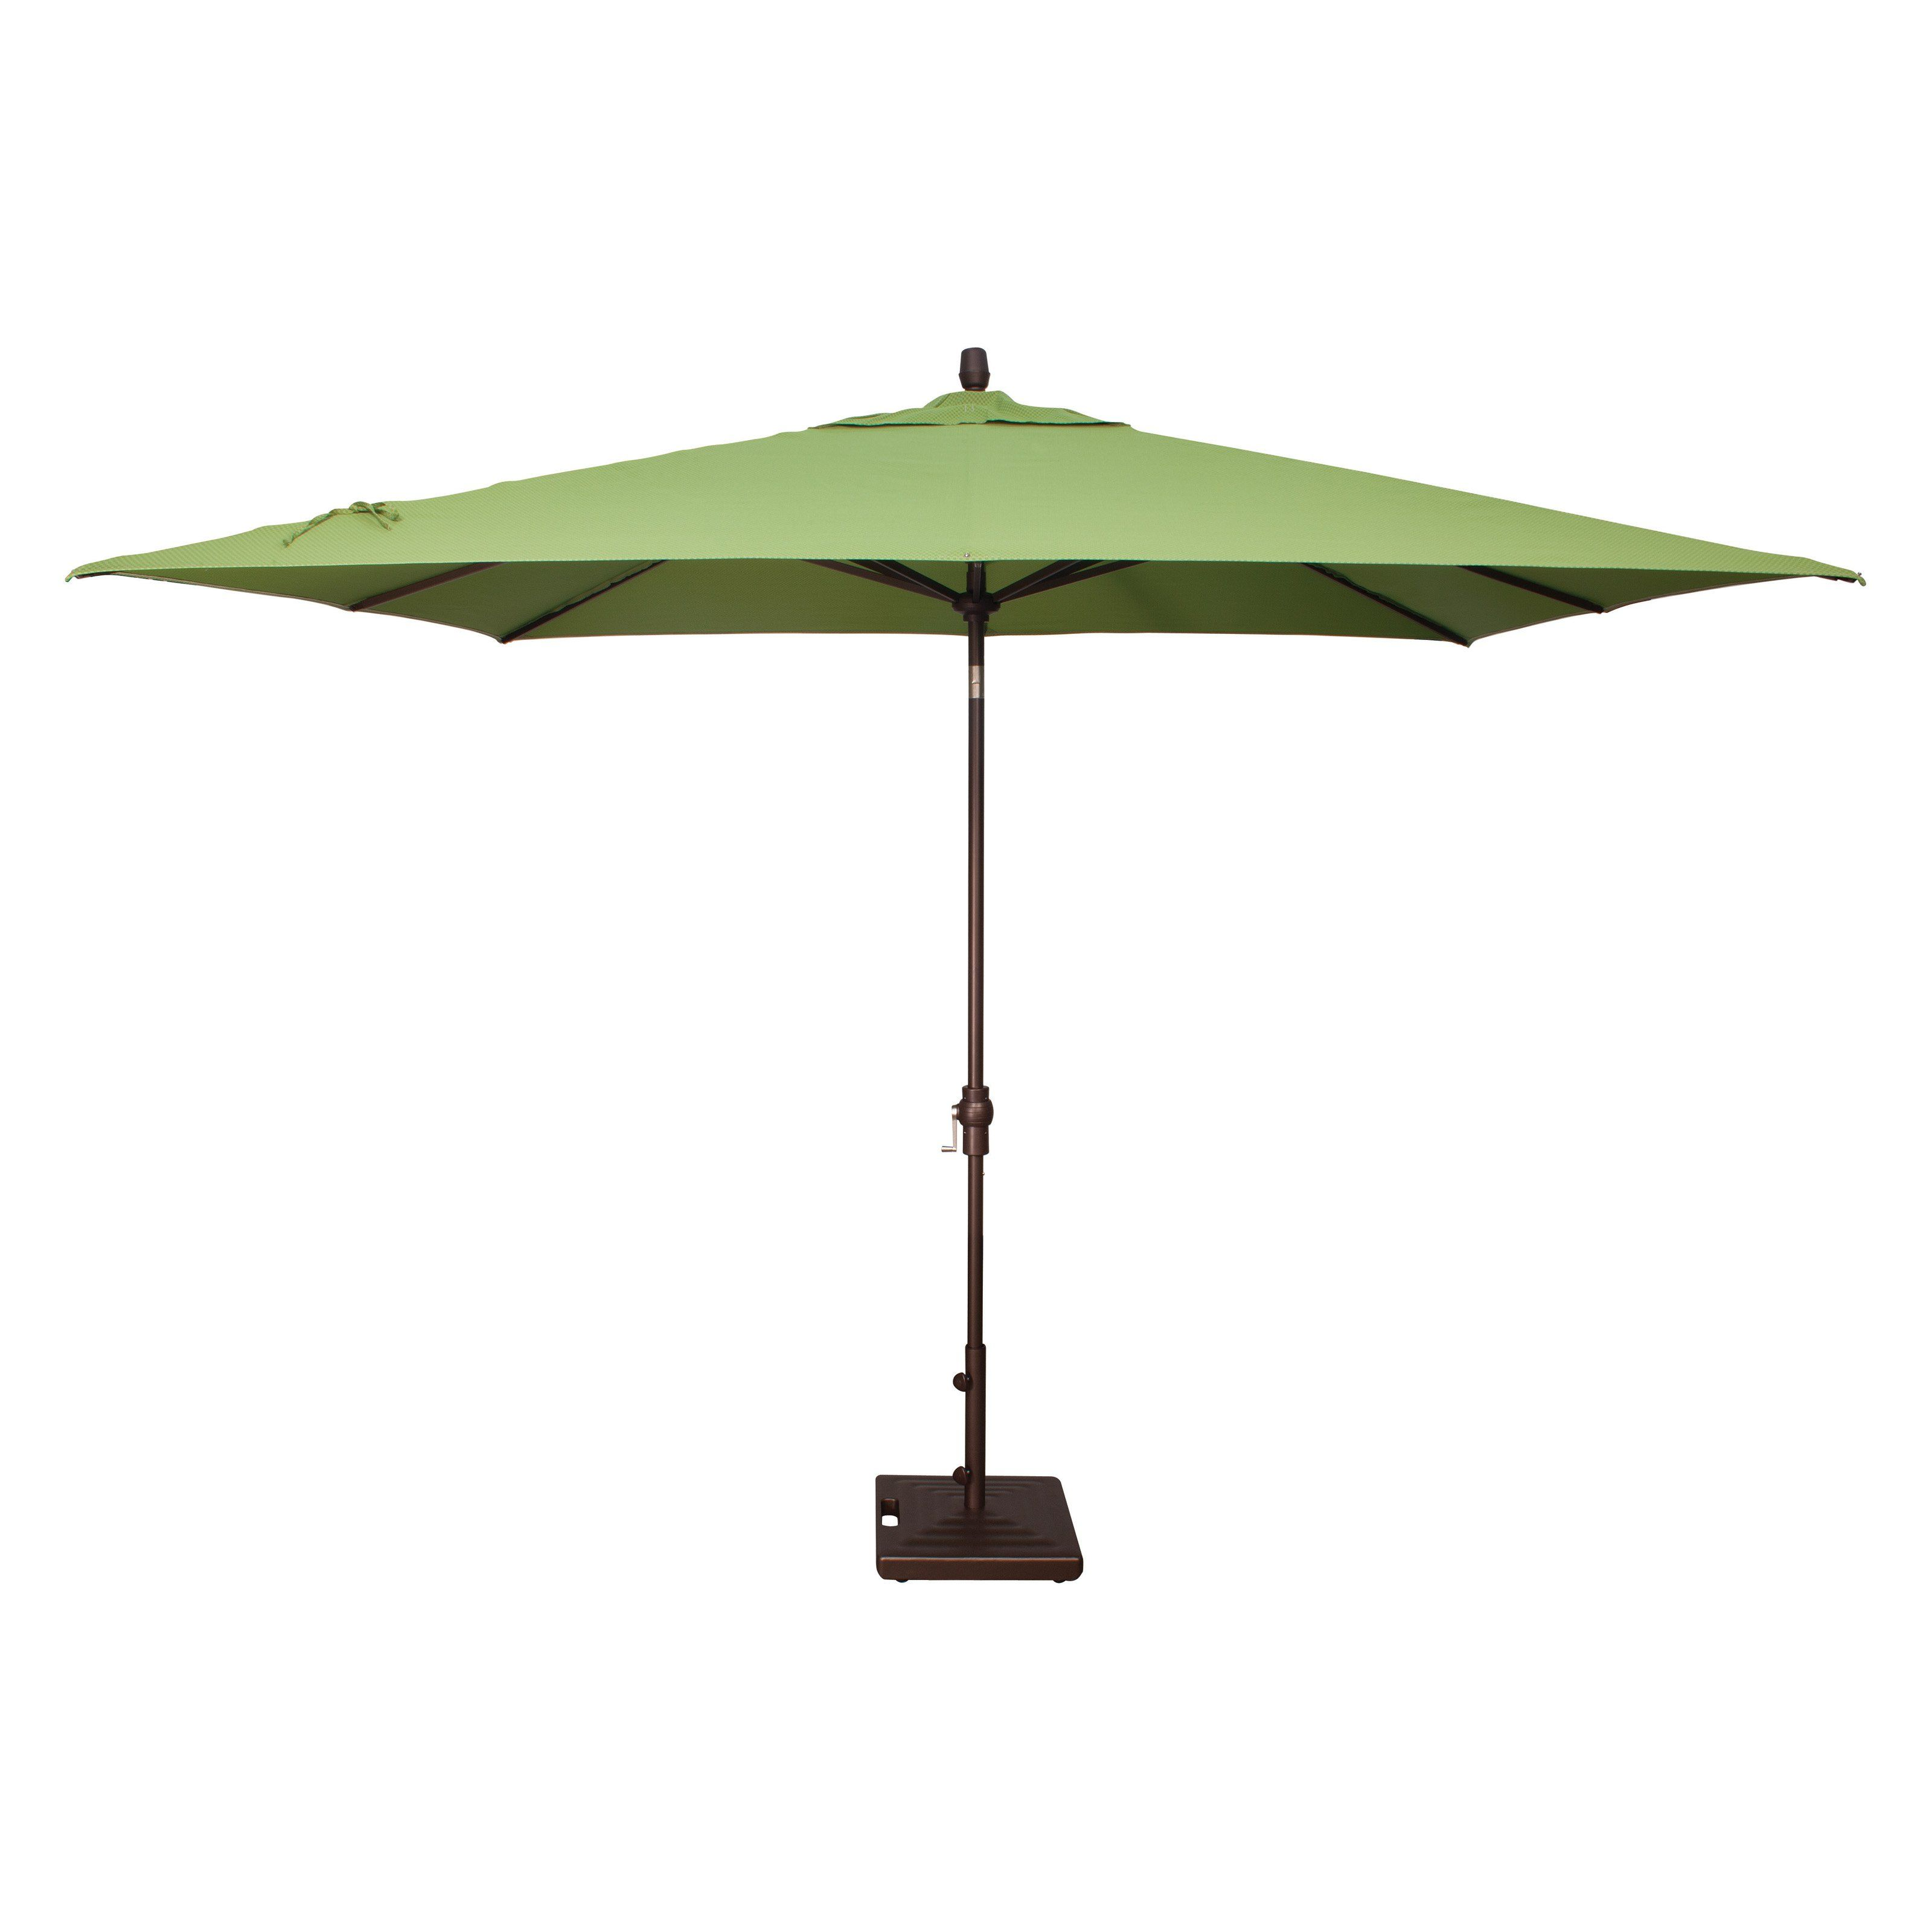 size what our to a shade and best oval the features provides rectangular outdoor pin is patio table umbrella great umbrellas